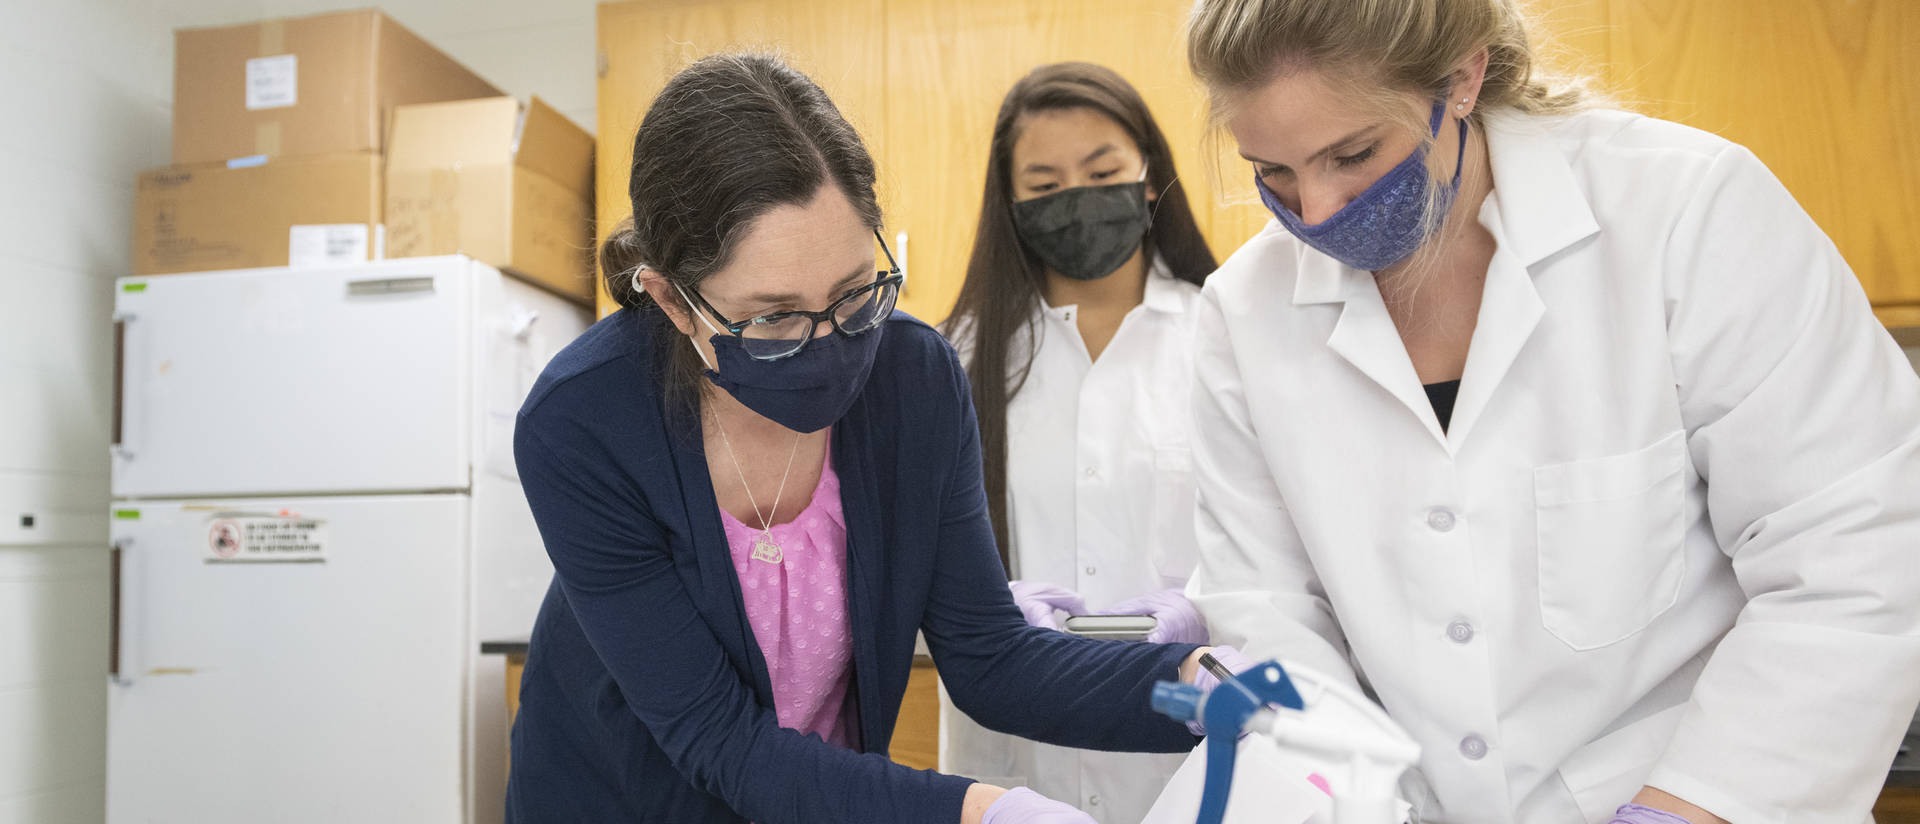 Dr. Jamie Lyman Gingerich, a UW-Eau Claire associate professor of biology, works in a Phillips Hall laboratory with students Kati Sadowska, center, and Caterra Leavens.